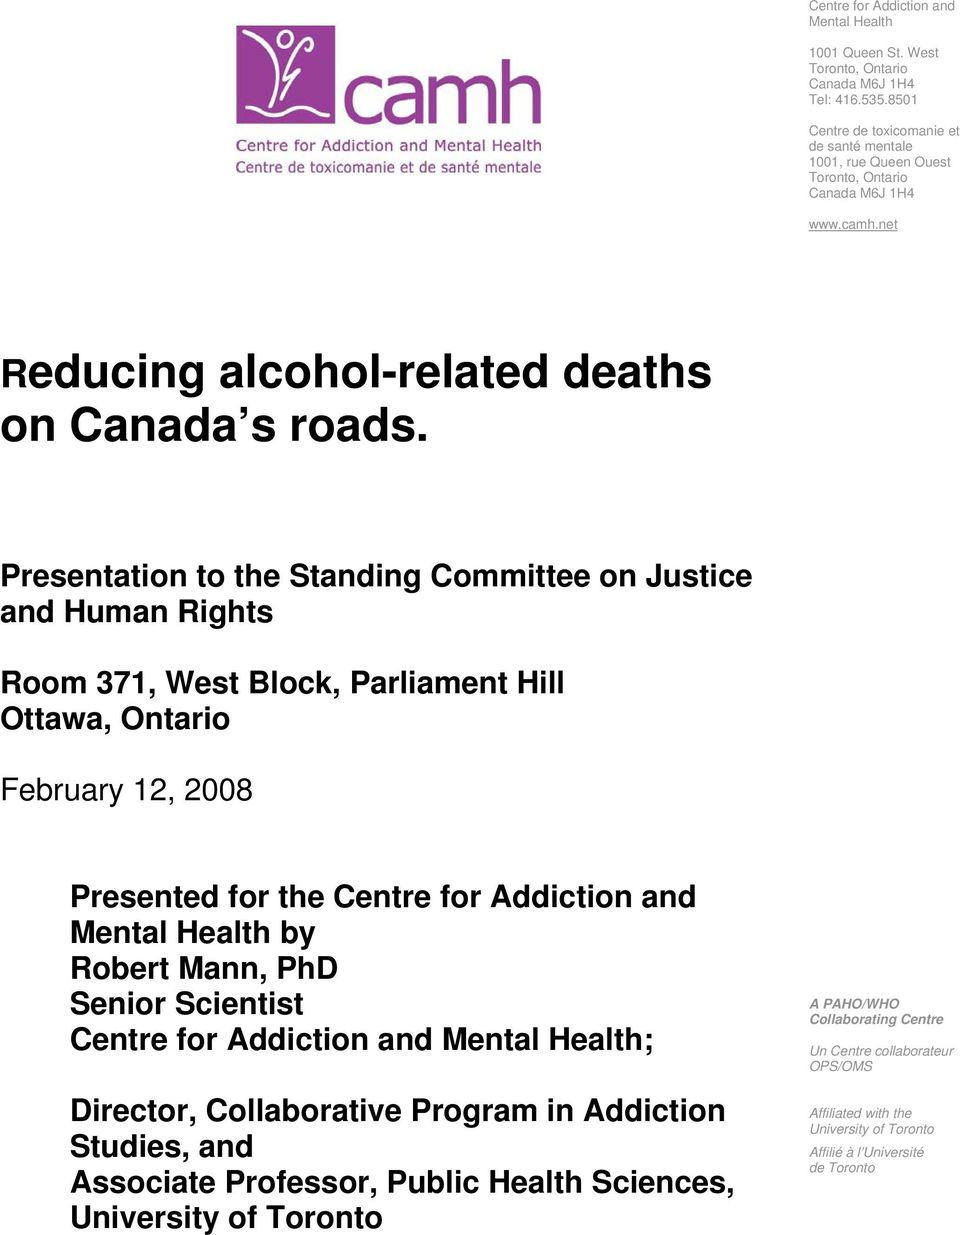 Presentation to the Standing Committee on Justice and Human Rights Room 371, West Block, Parliament Hill Ottawa, Ontario February 12, 2008 Presented for the Centre for Addiction and Mental Health by